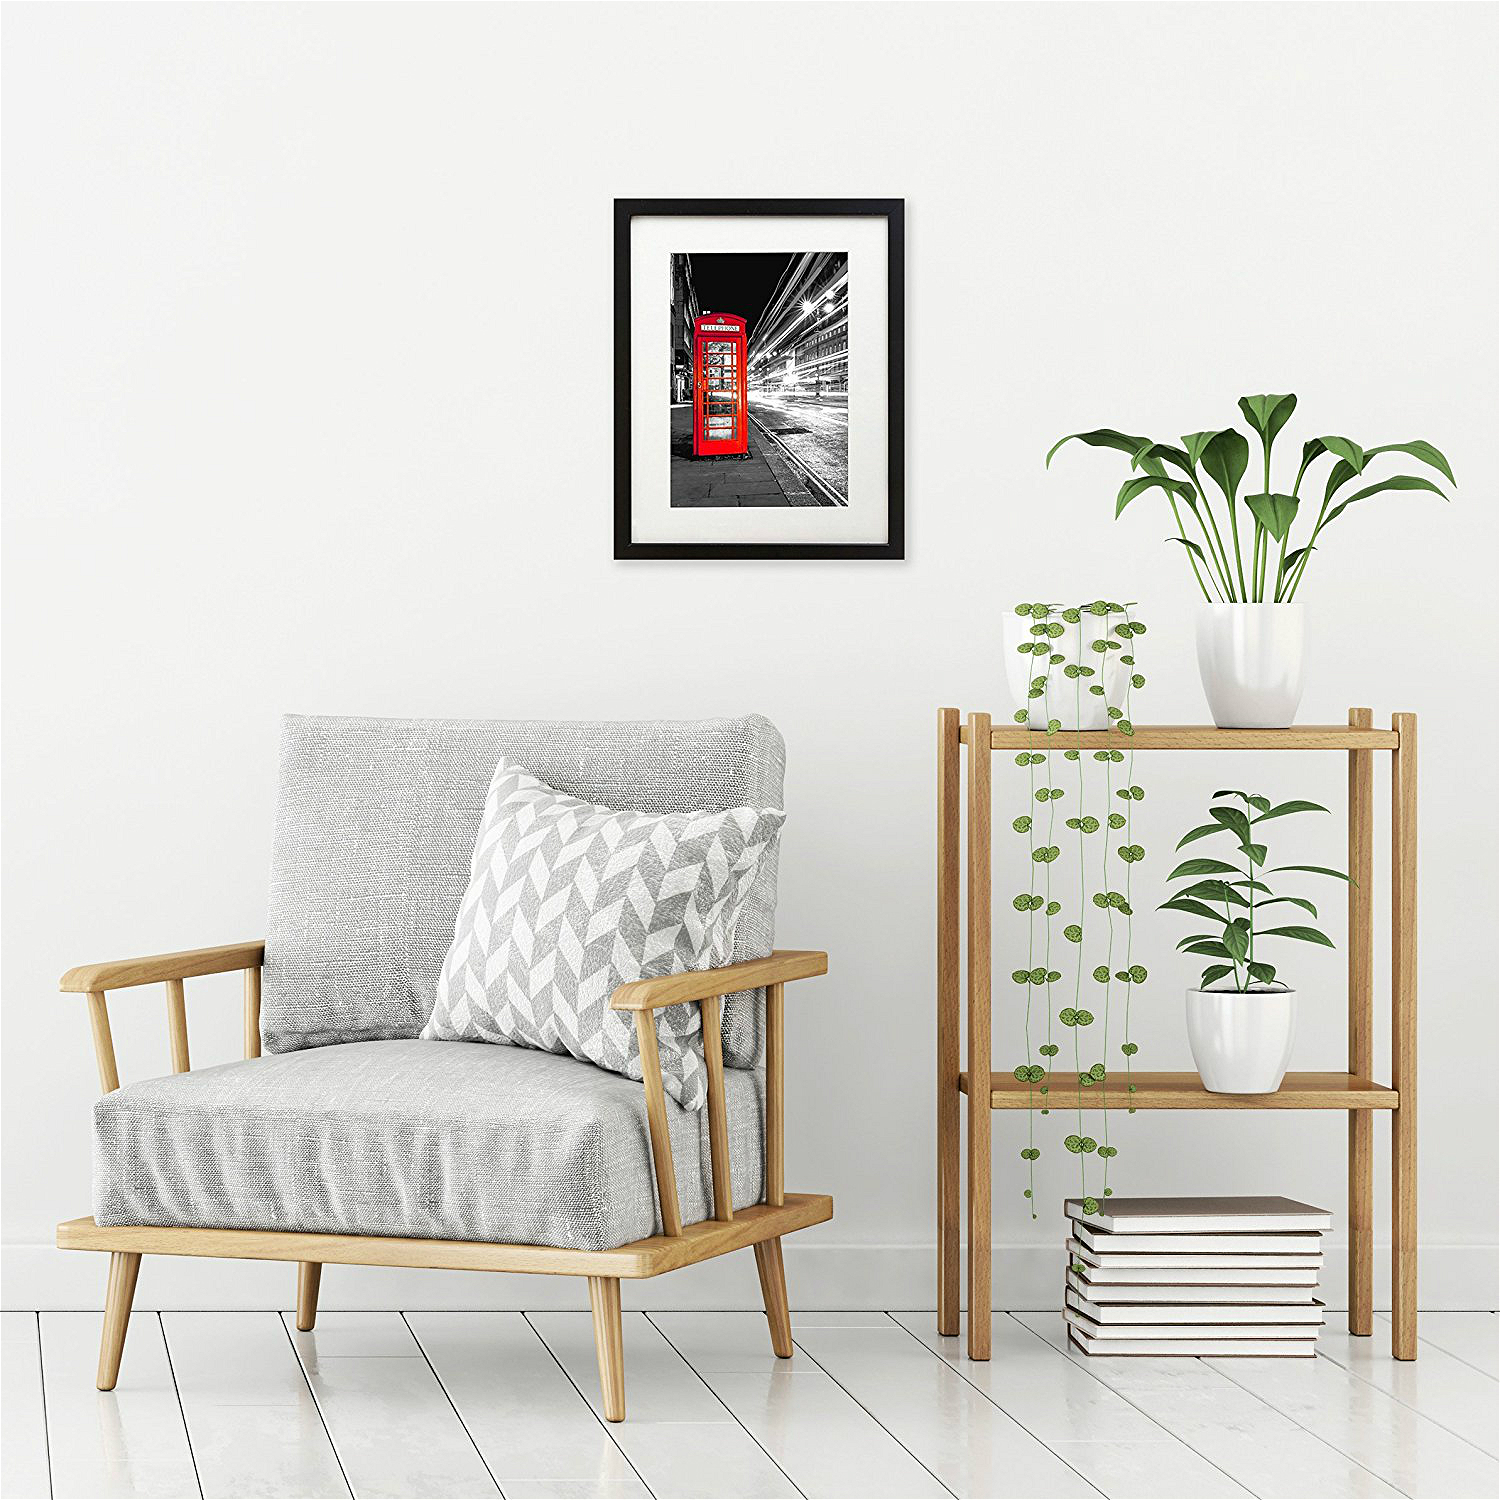 Black and White Landscape Poster London Landscape Canvas Wall Art Photo Frame Telephone Booth Red Picture Wall Decor Drop Ship